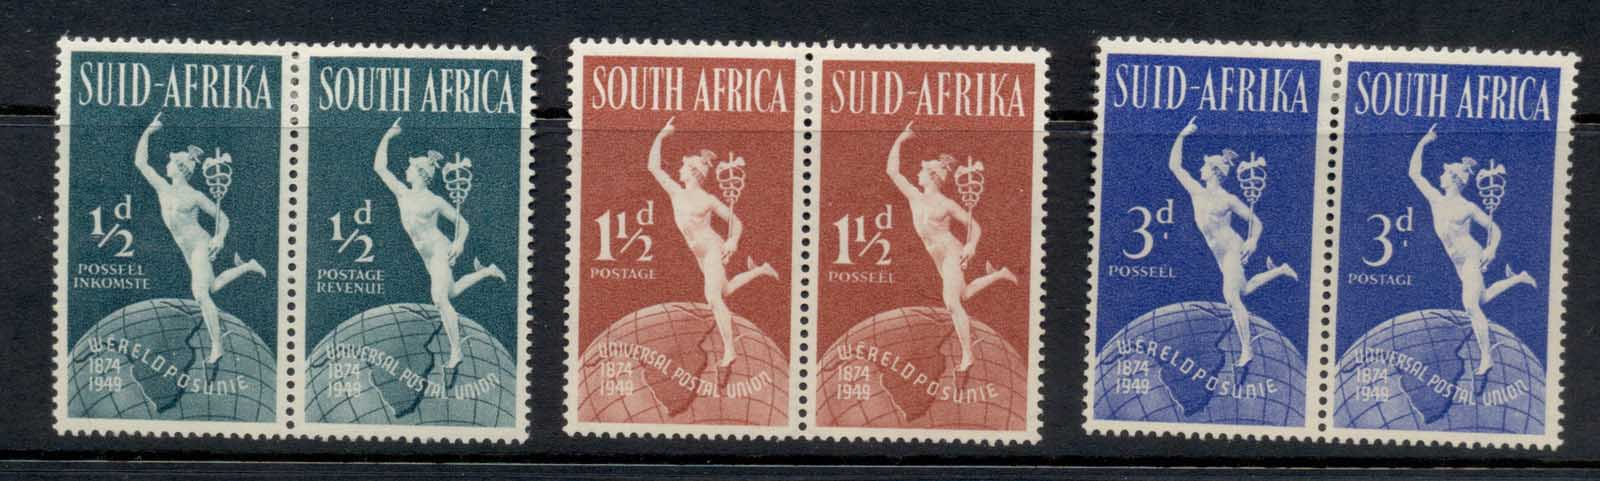 South Africa 1949 UPU 75th Anniv. MLH